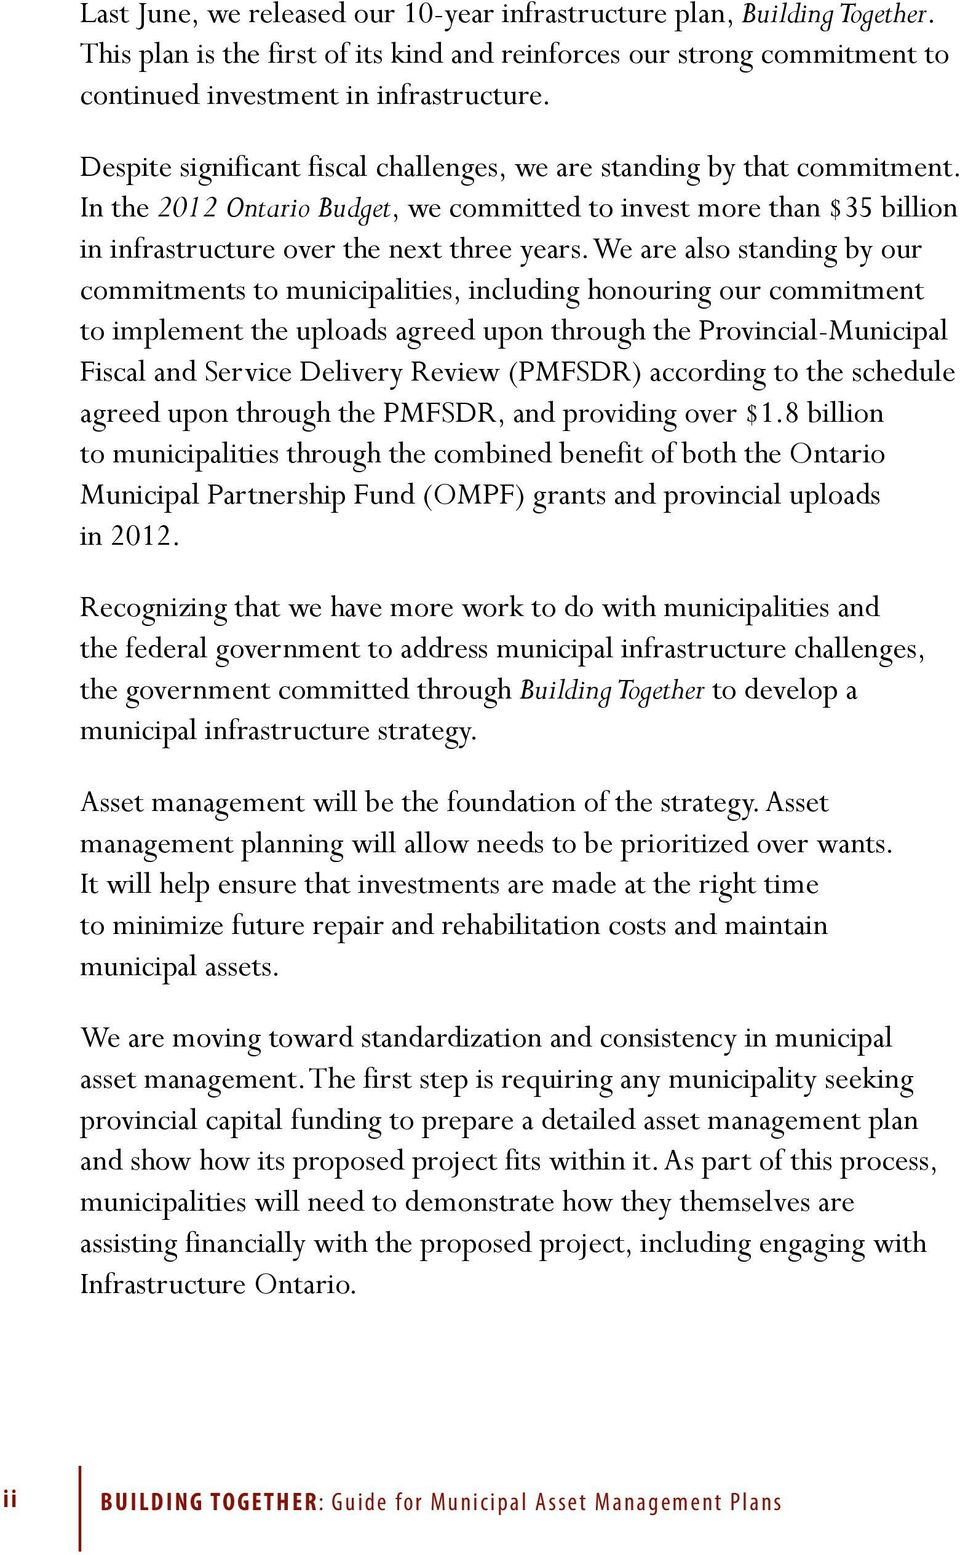 We are also standing by our commitments to municipalities, including honouring our commitment to implement the uploads agreed upon through the Provincial-Municipal Fiscal and Service Delivery Review